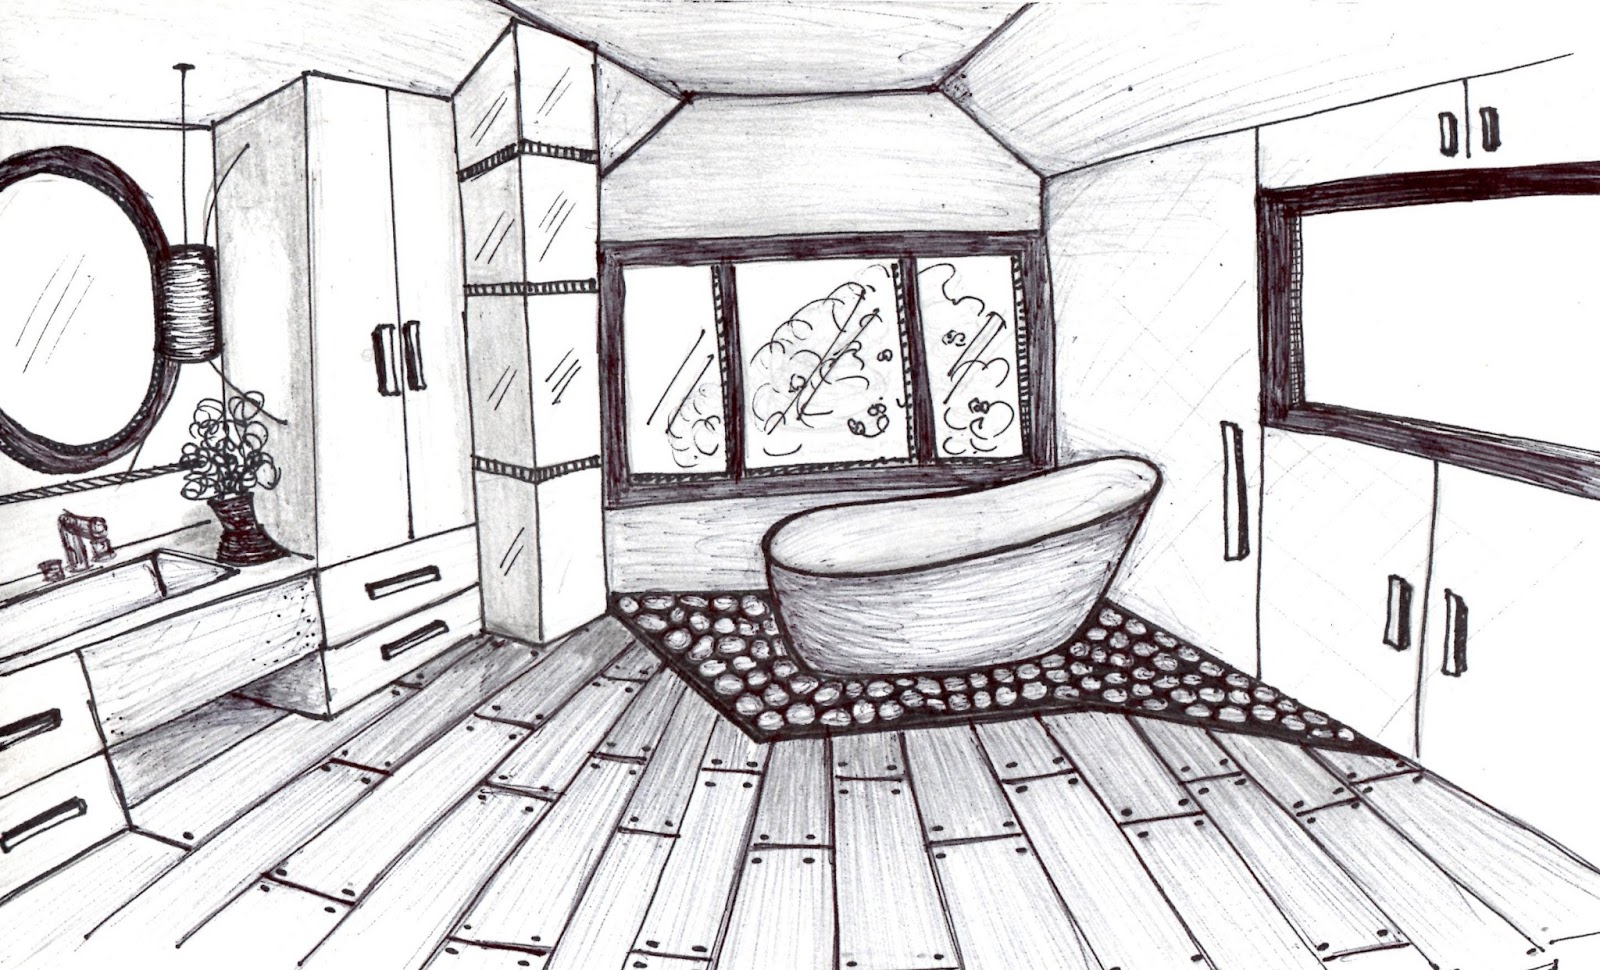 Interior Architectural Designs Sketches